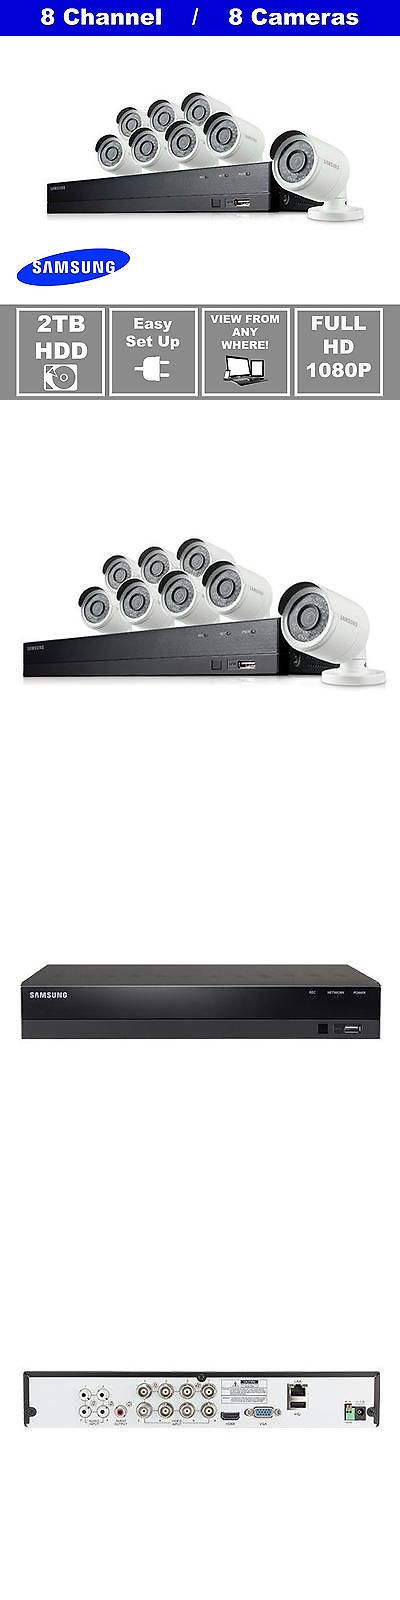 Surveillance Security Systems: Samsung Sdh-B74081 8 Channel 2Tb Hdd, 1080P Dvr Security System, 8 Cameras, New BUY IT NOW ONLY: $519.0